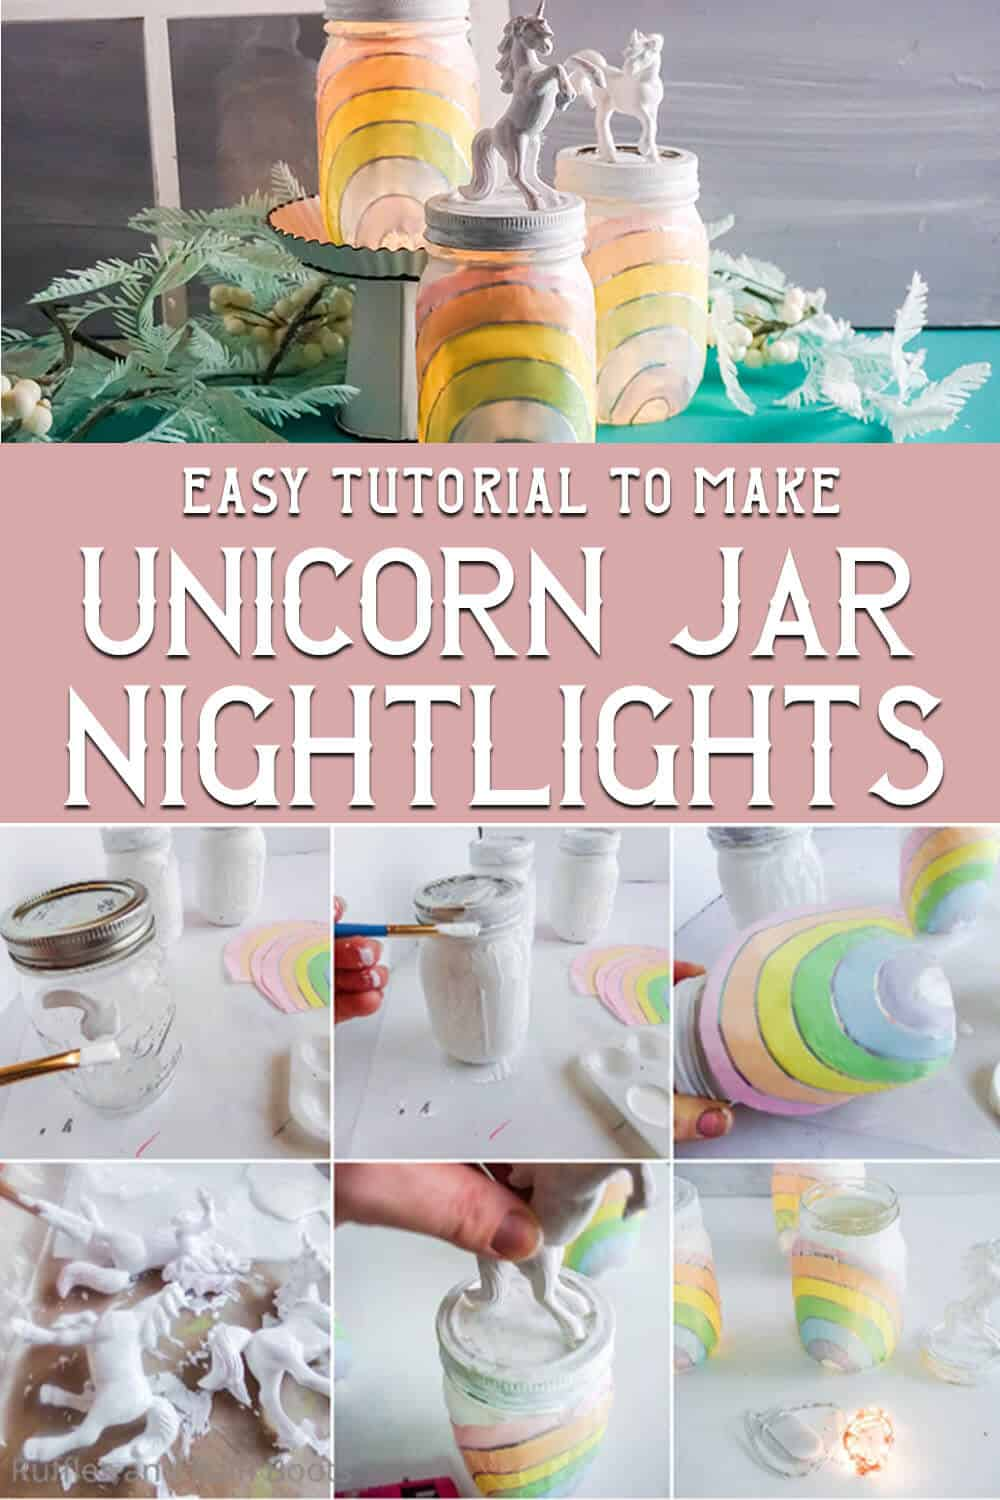 photo collage of easy unicorn craft idea for jar nightlights with unicorns on top with text which reads easy tutorial to make unicorn jar nightlights